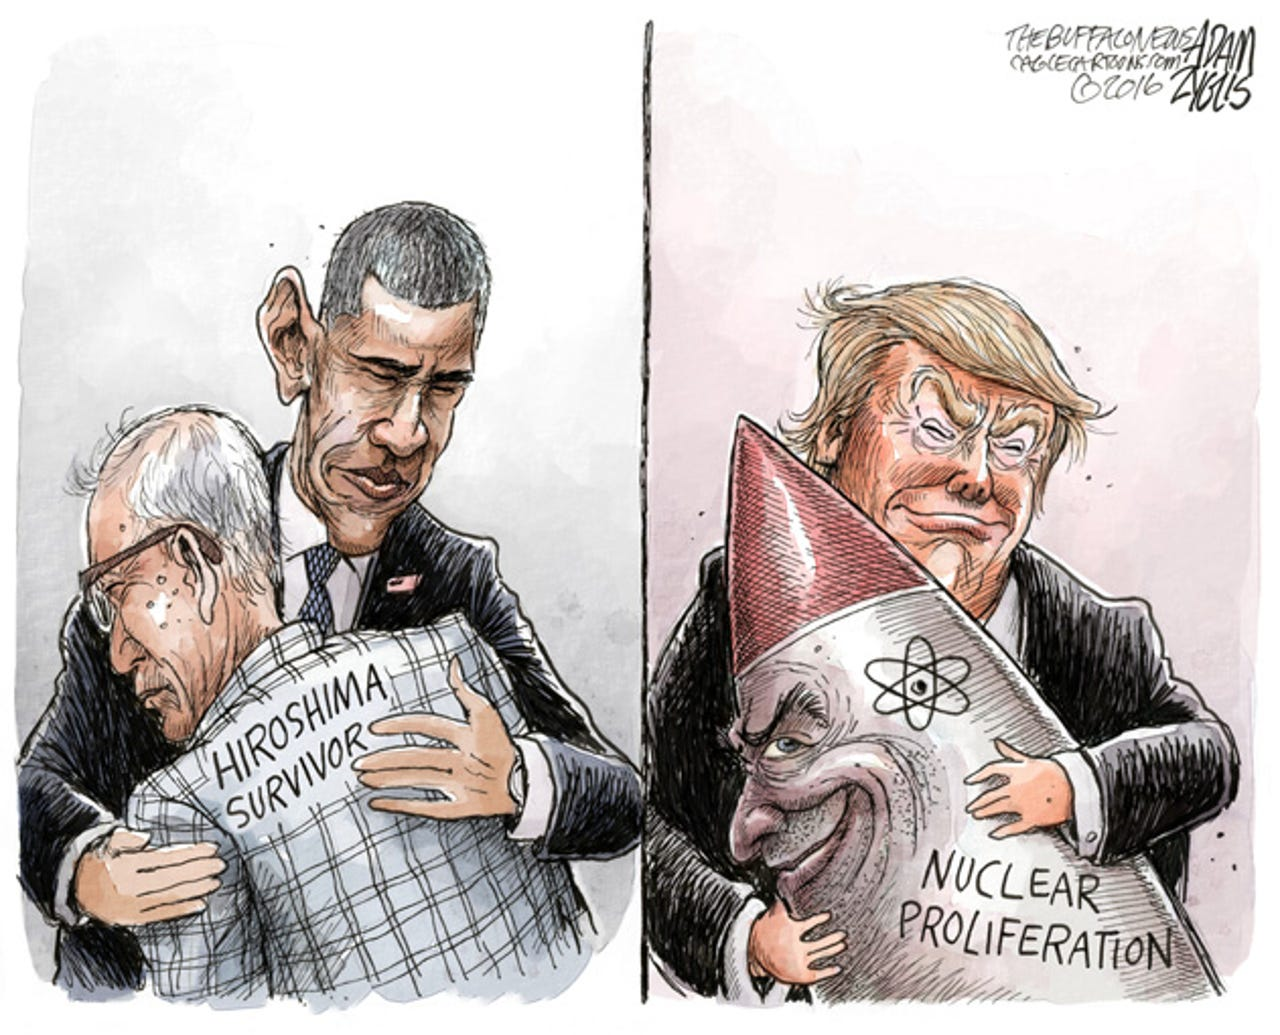 A look back at the big issues and events of the past decade through the eyes of America's top cartoonists.